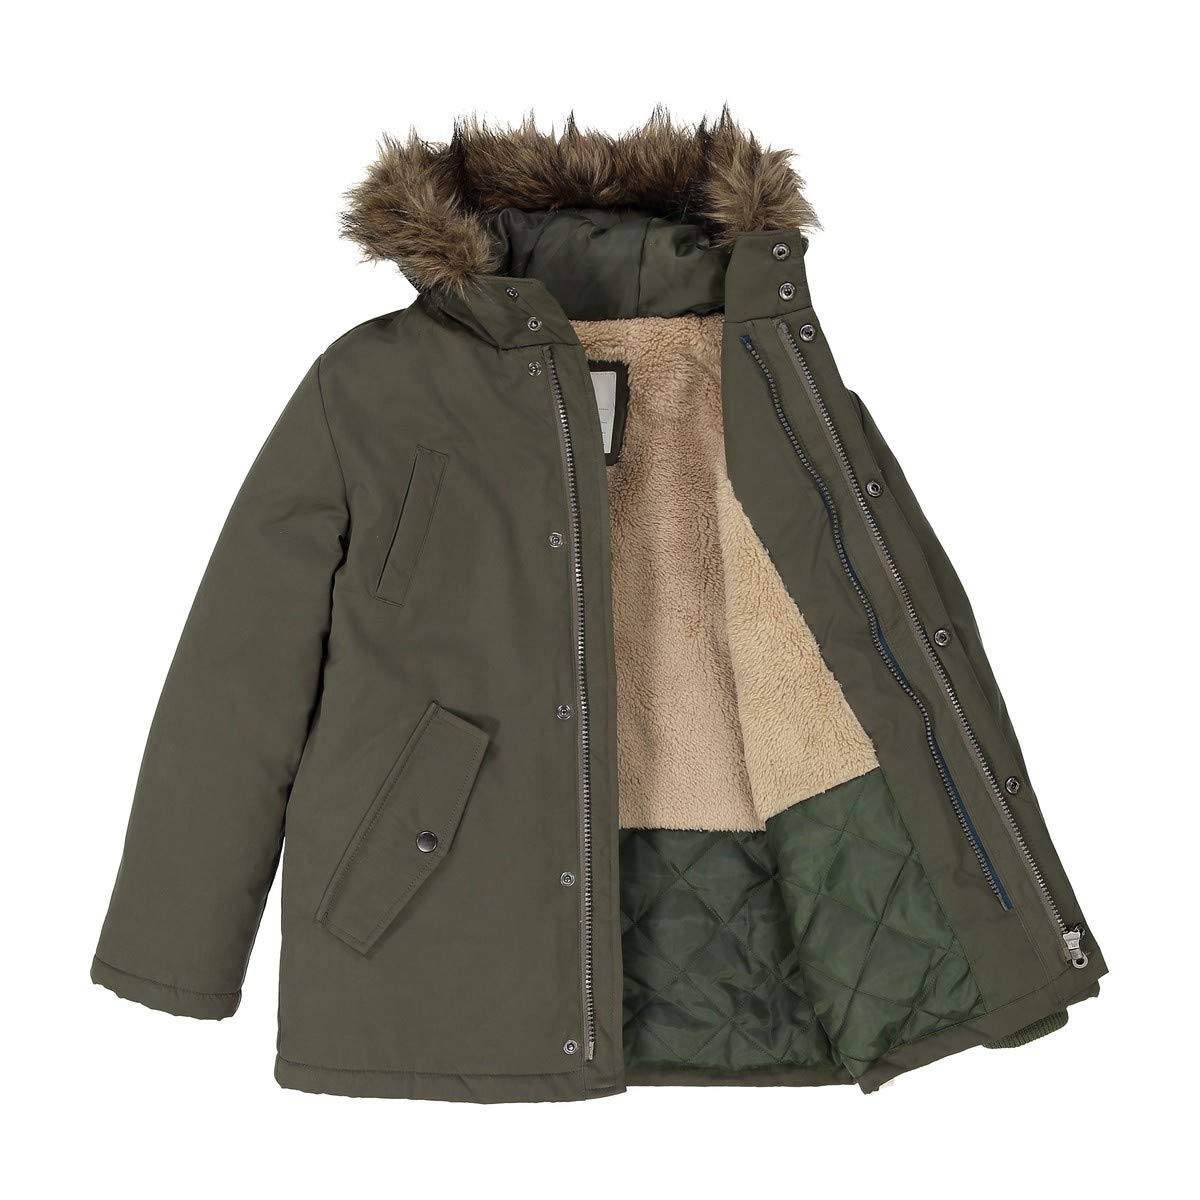 La Redoute Collections Big Boys 3-in-1 Parka, 3-12 Years Green Size 6 Years - 44 in.